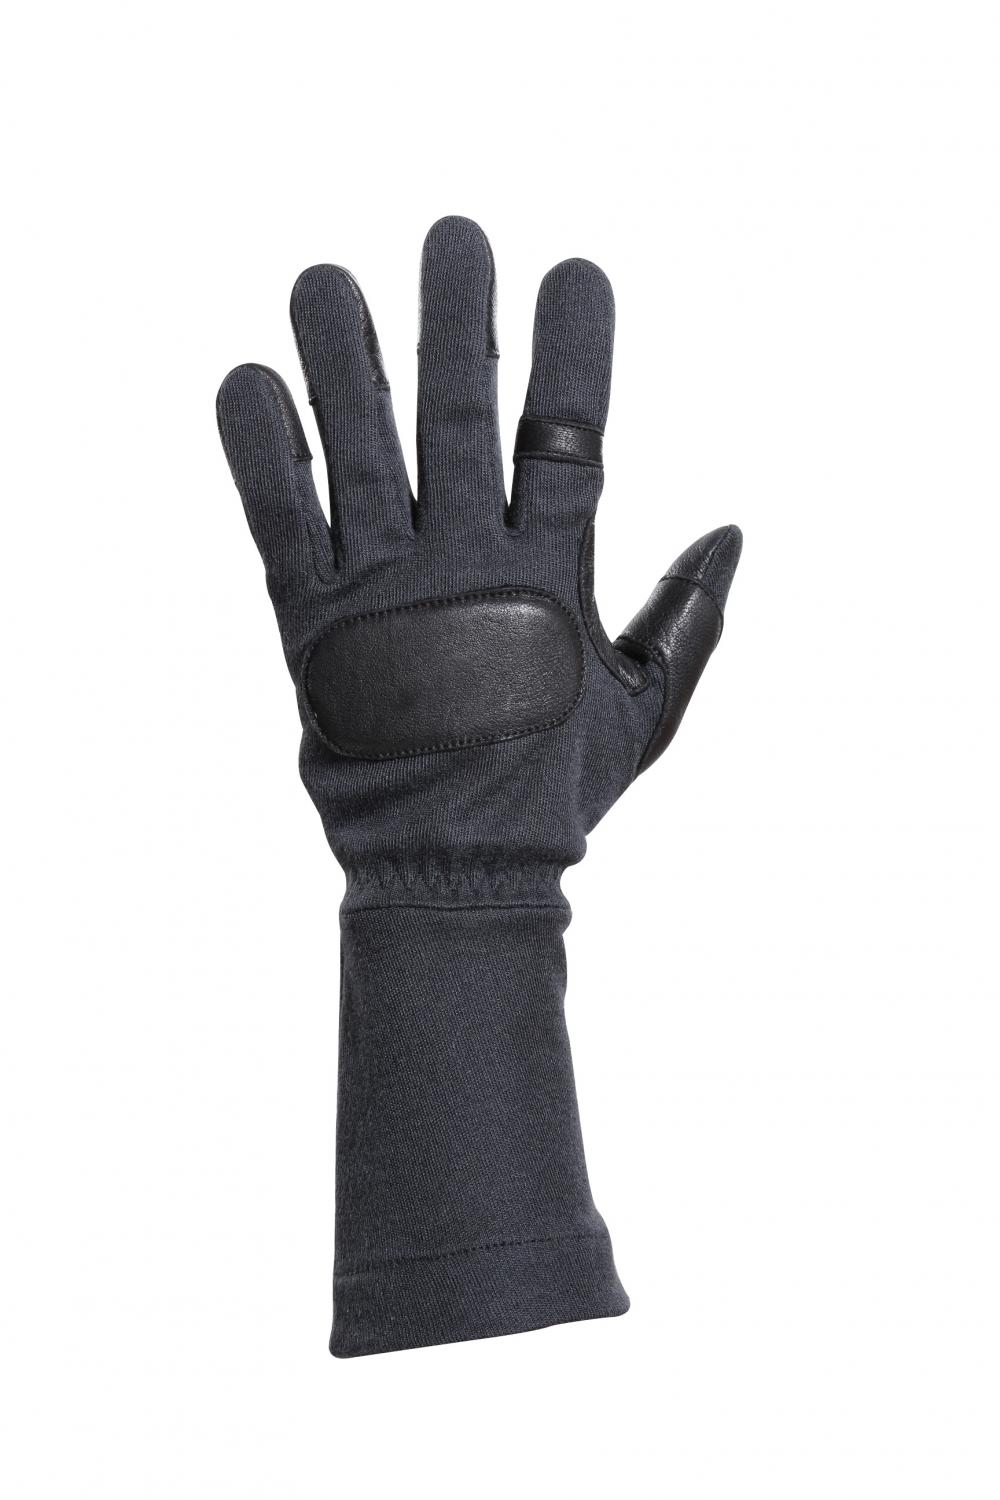 Caisi Fishing Gloves